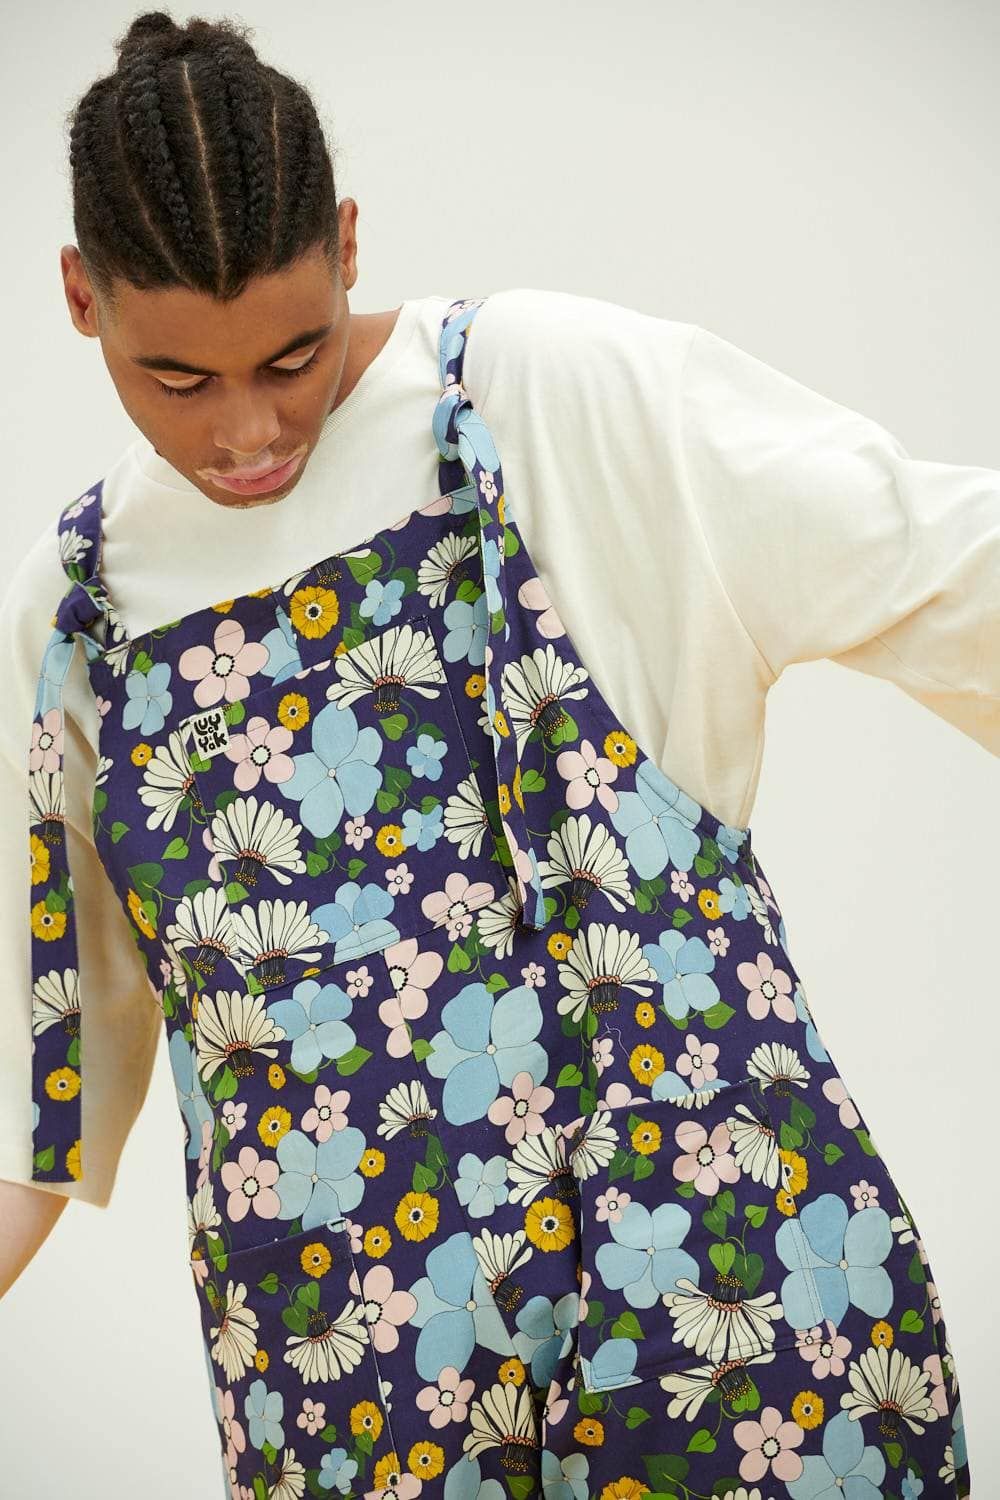 Lucy & Yak Dungarees NEEDS NAME Limited Edition Organic Cotton Dungarees in Retro Floral Print